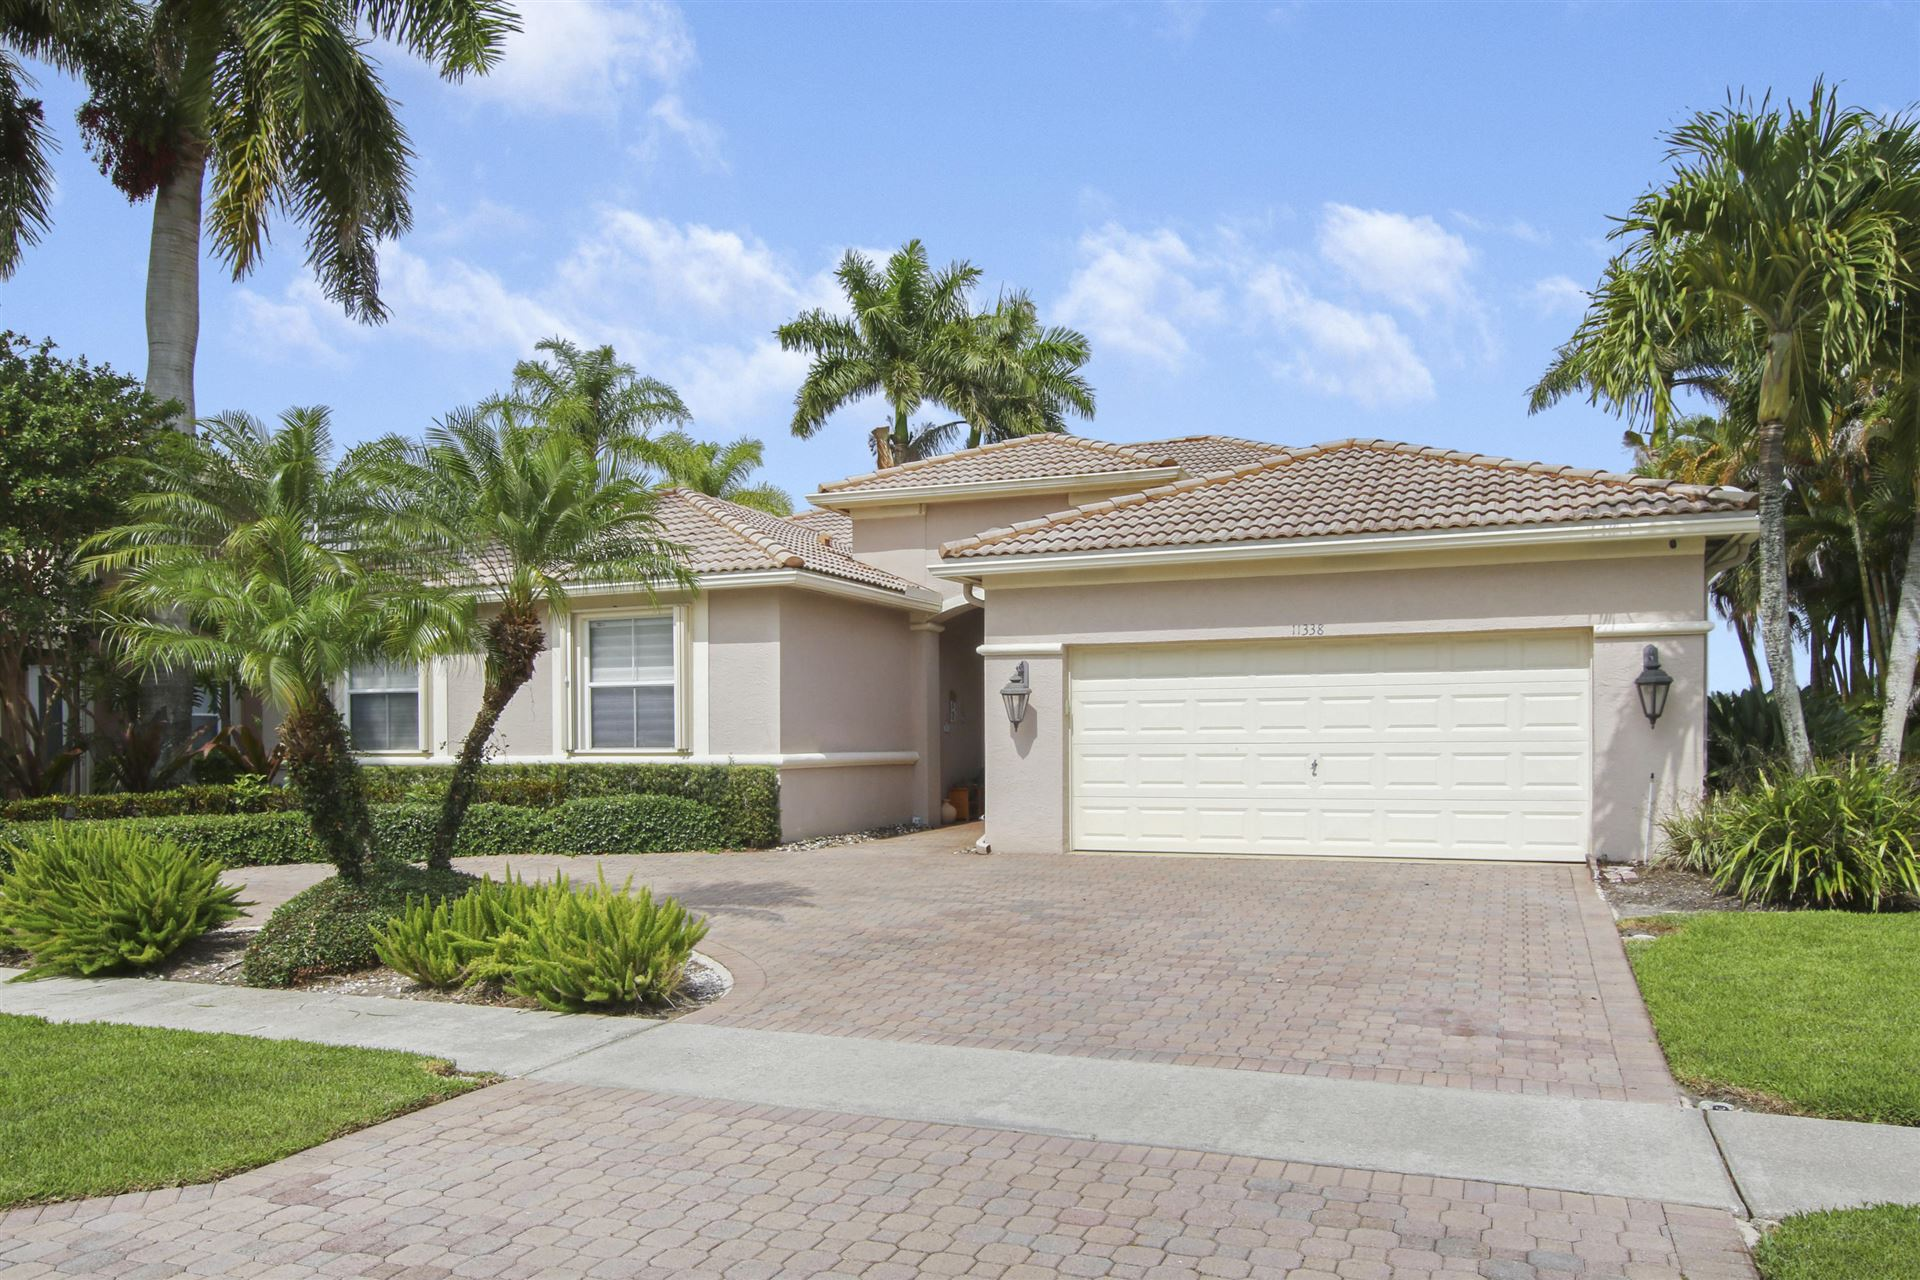 Photo of 11338 Sea Grass Circle, Boca Raton, FL 33498 (MLS # RX-10716623)